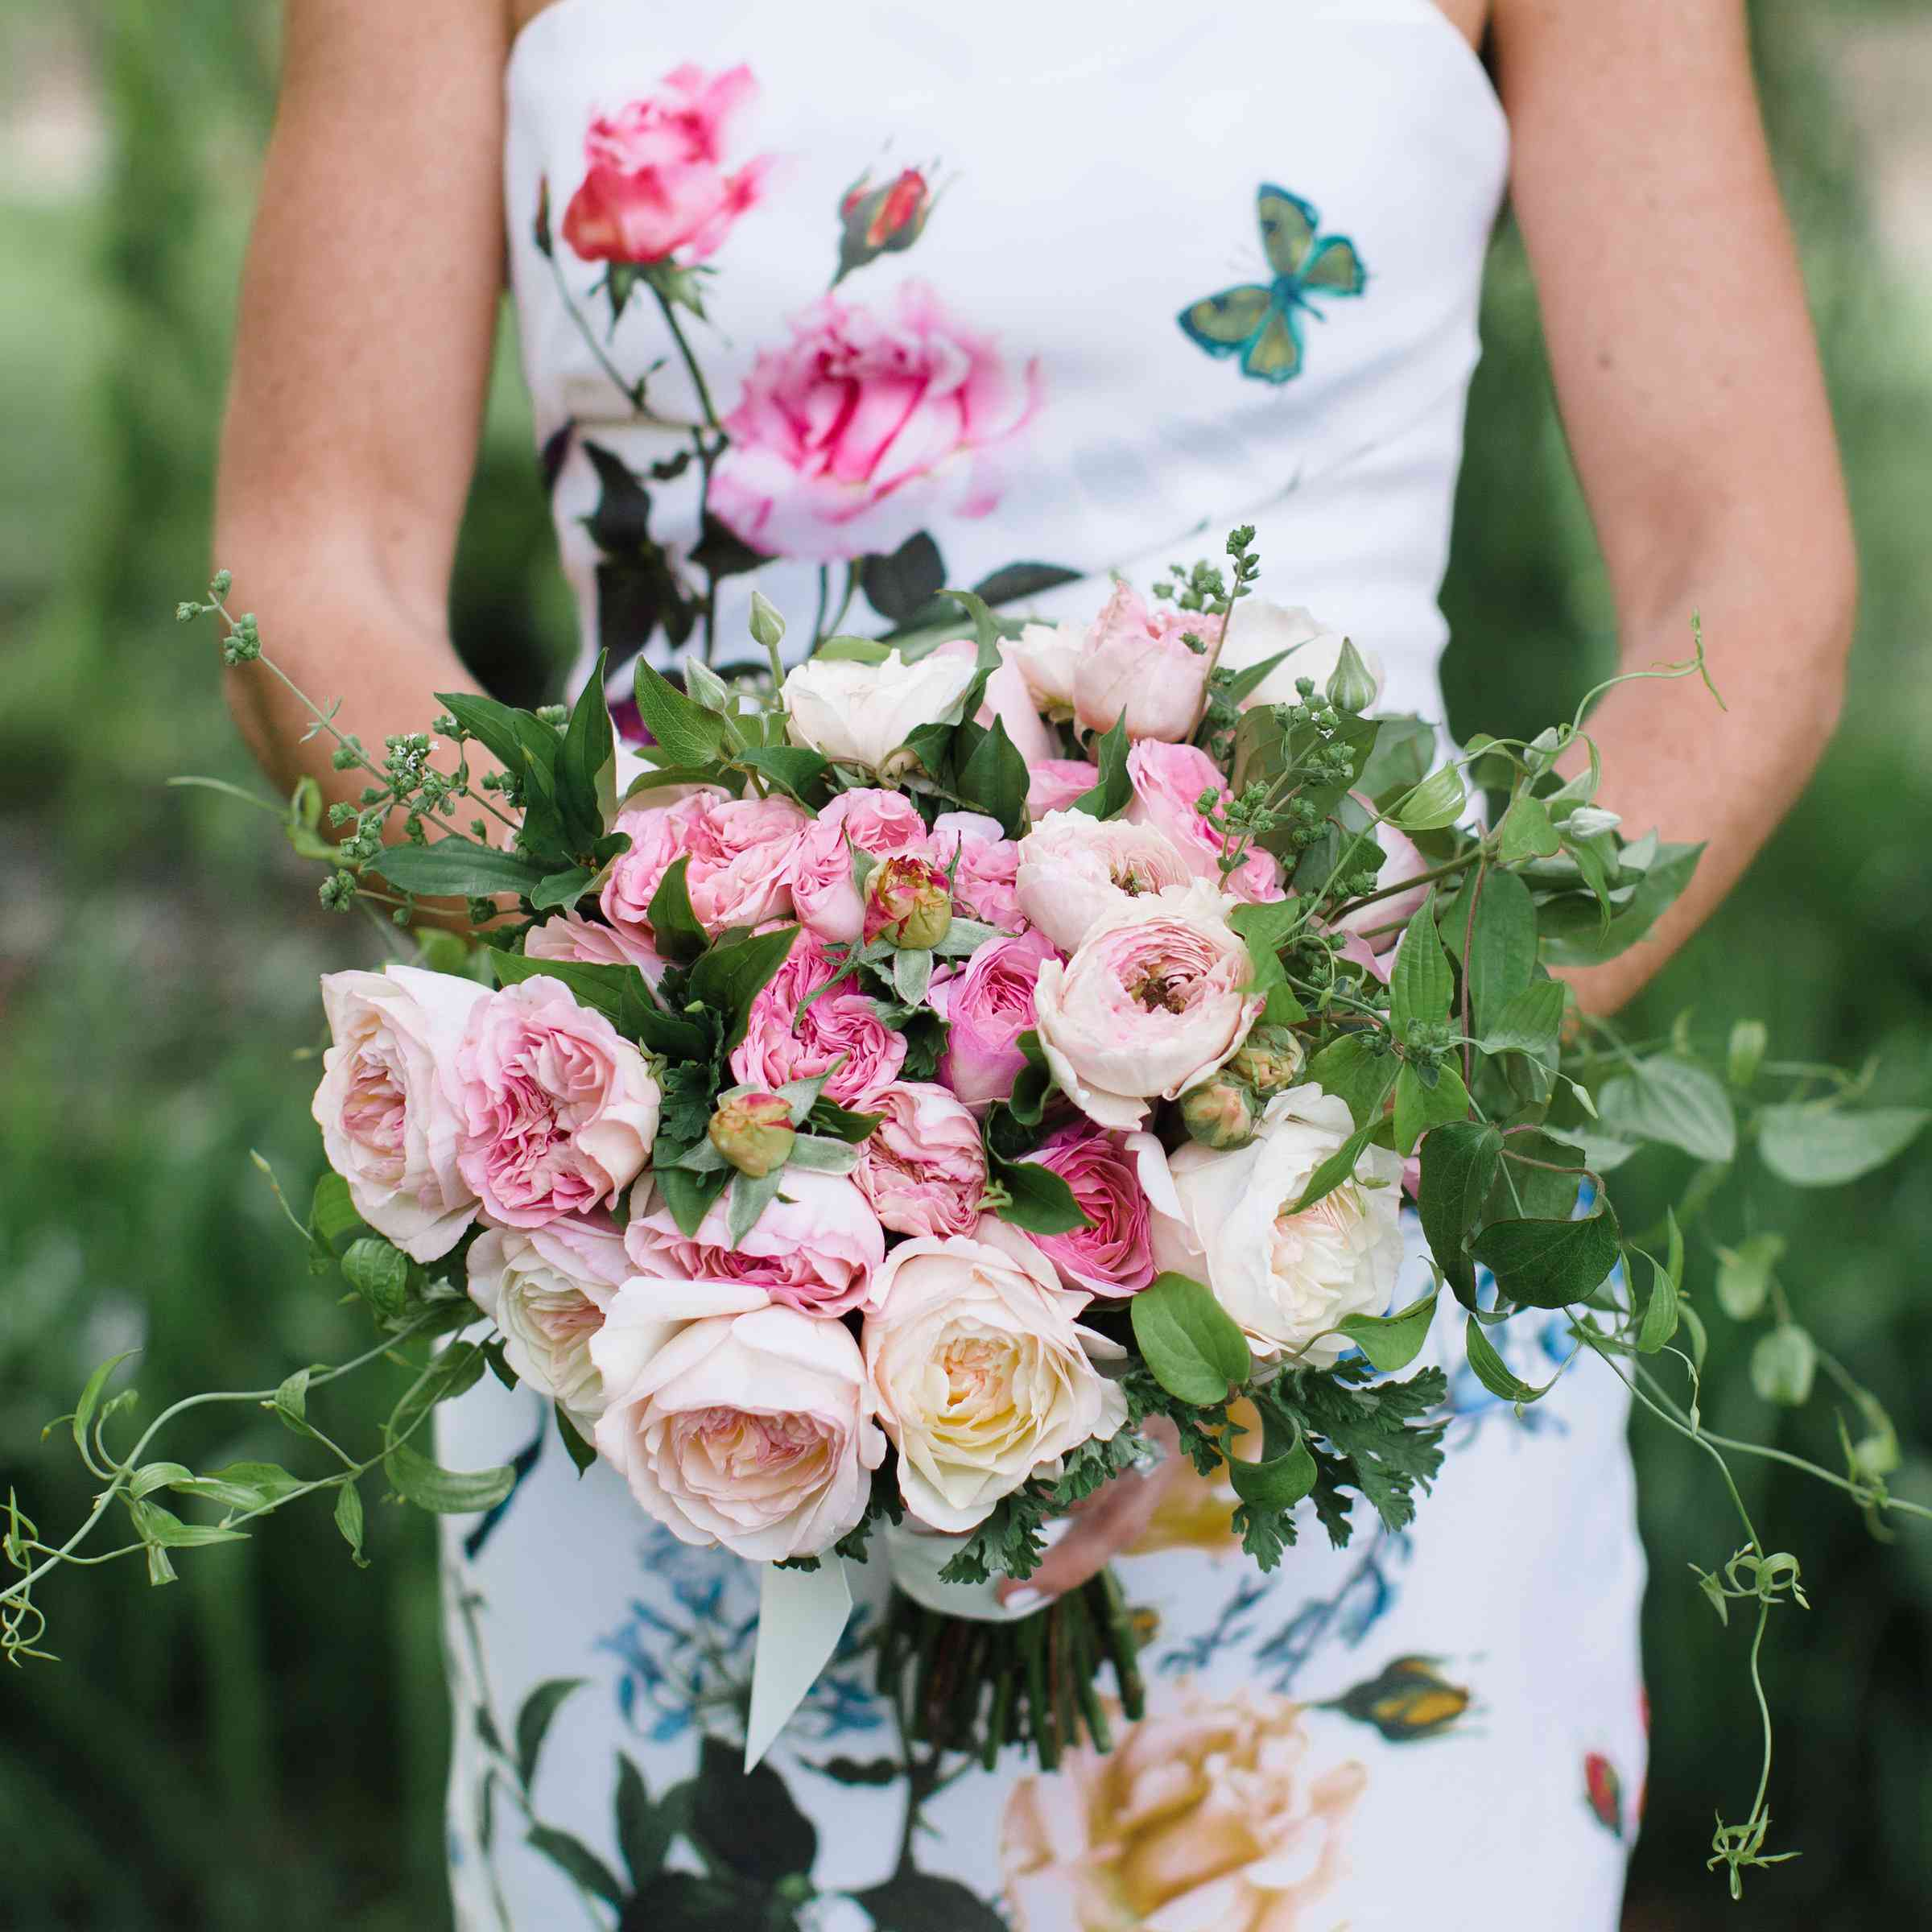 floral printed wedding dress with bouquet